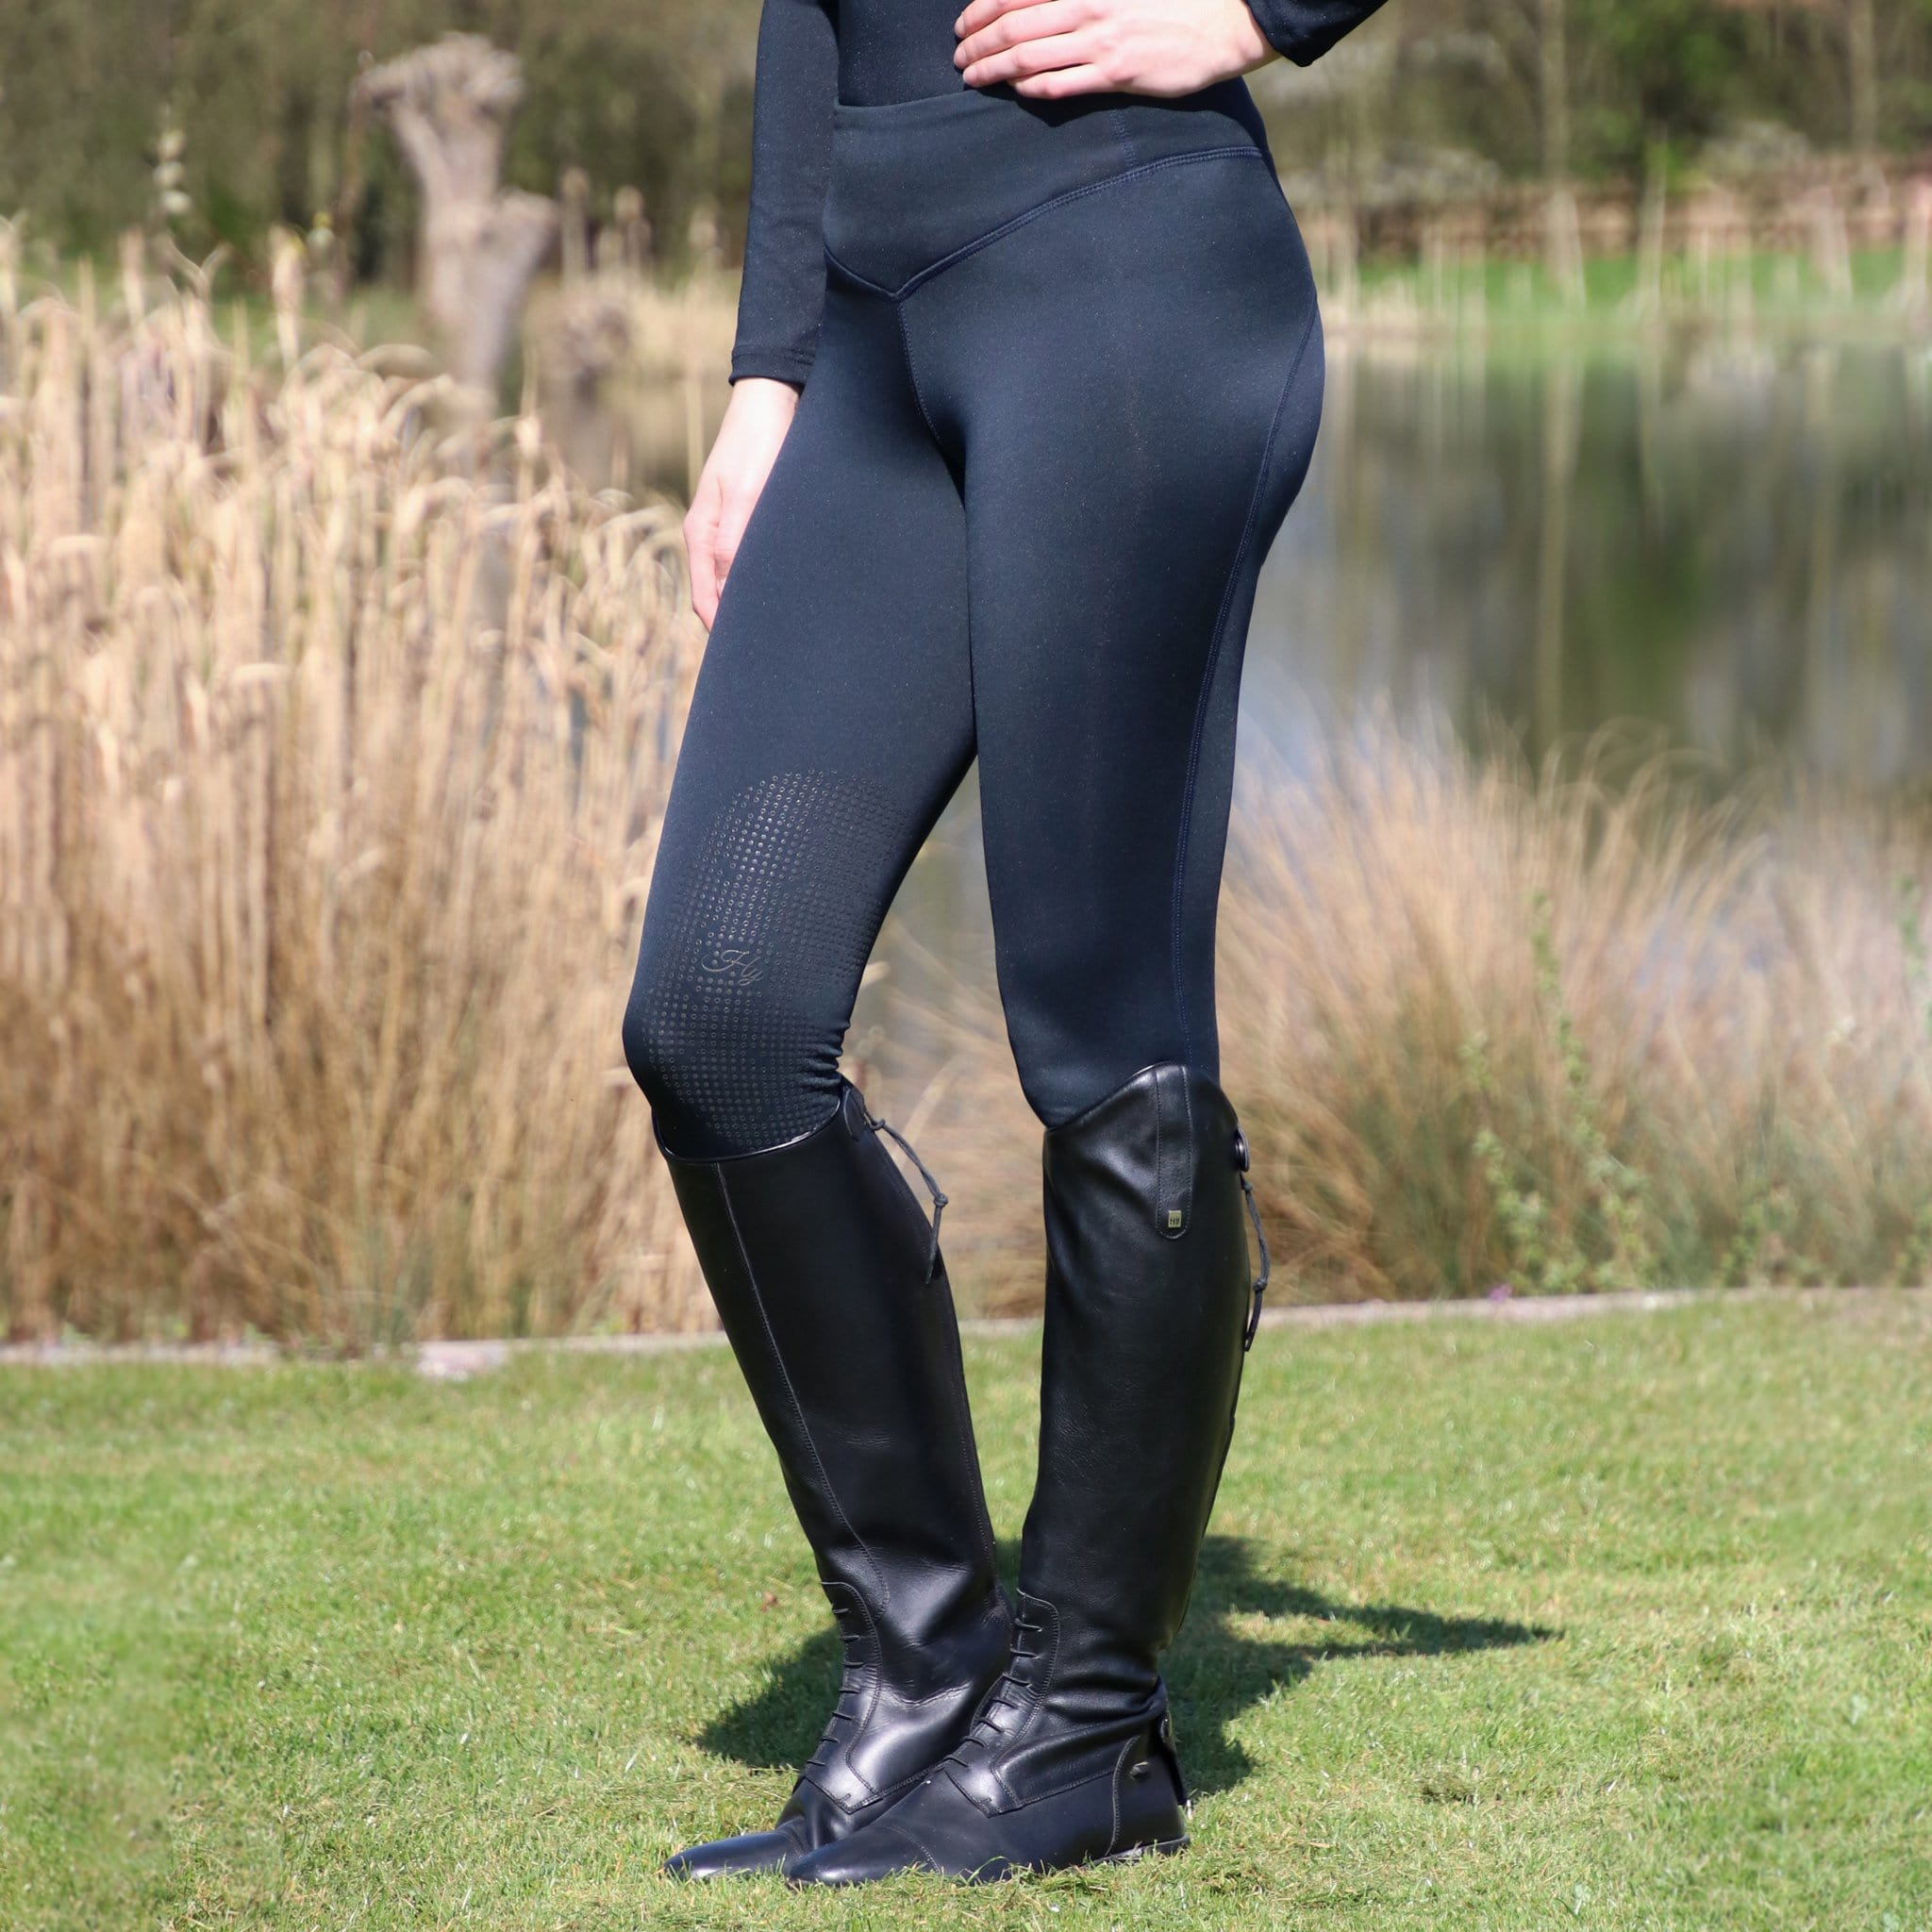 HyPerformance Oslo Softshell Silicone Knee Patch Riding Tights 21278 On Model Navy